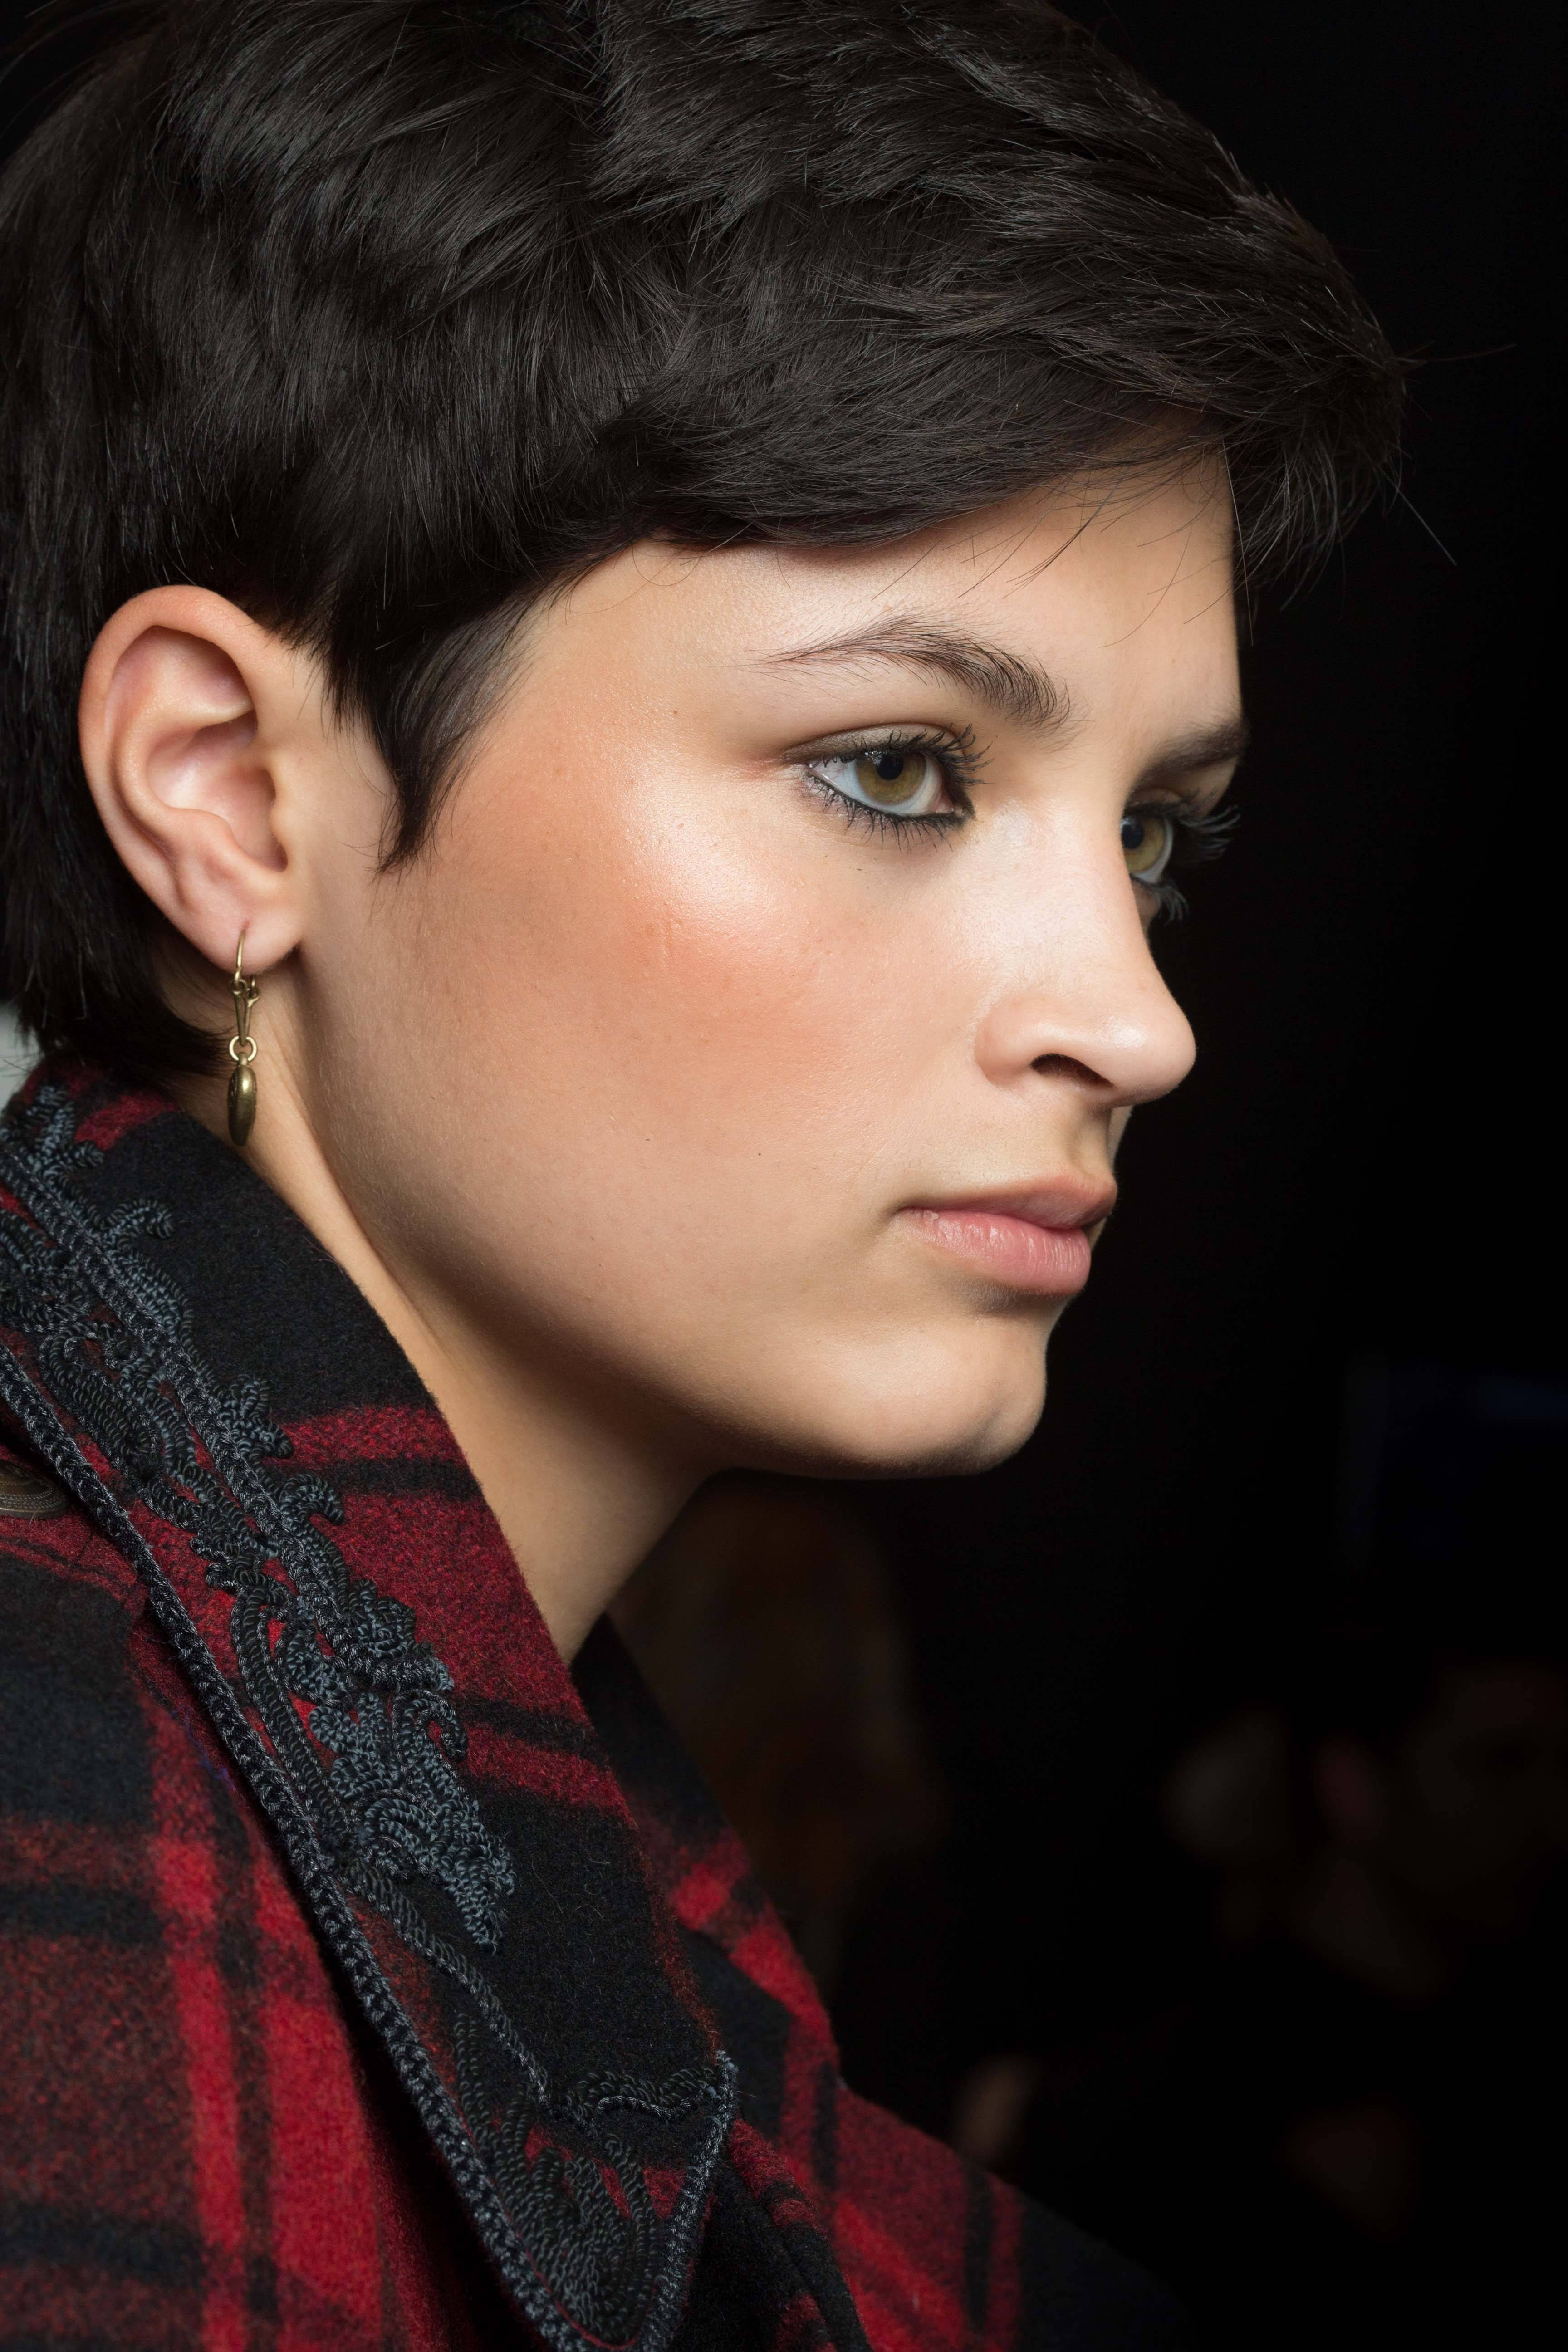 pixie crop and sideburns